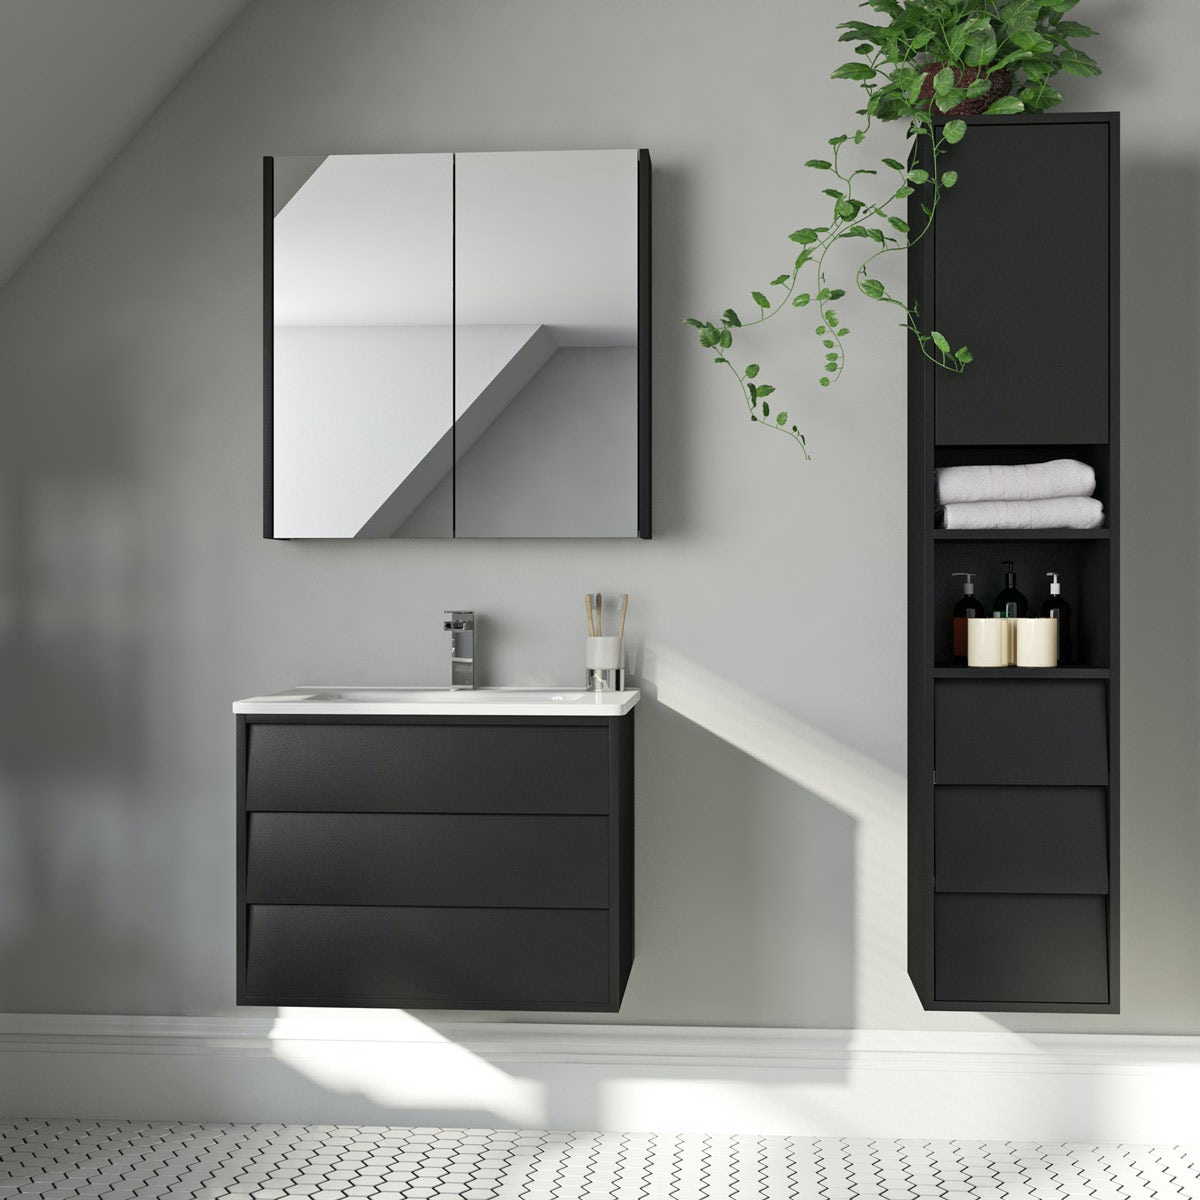 Mode Cooper anthracite furniture package with vanity unit 600mm